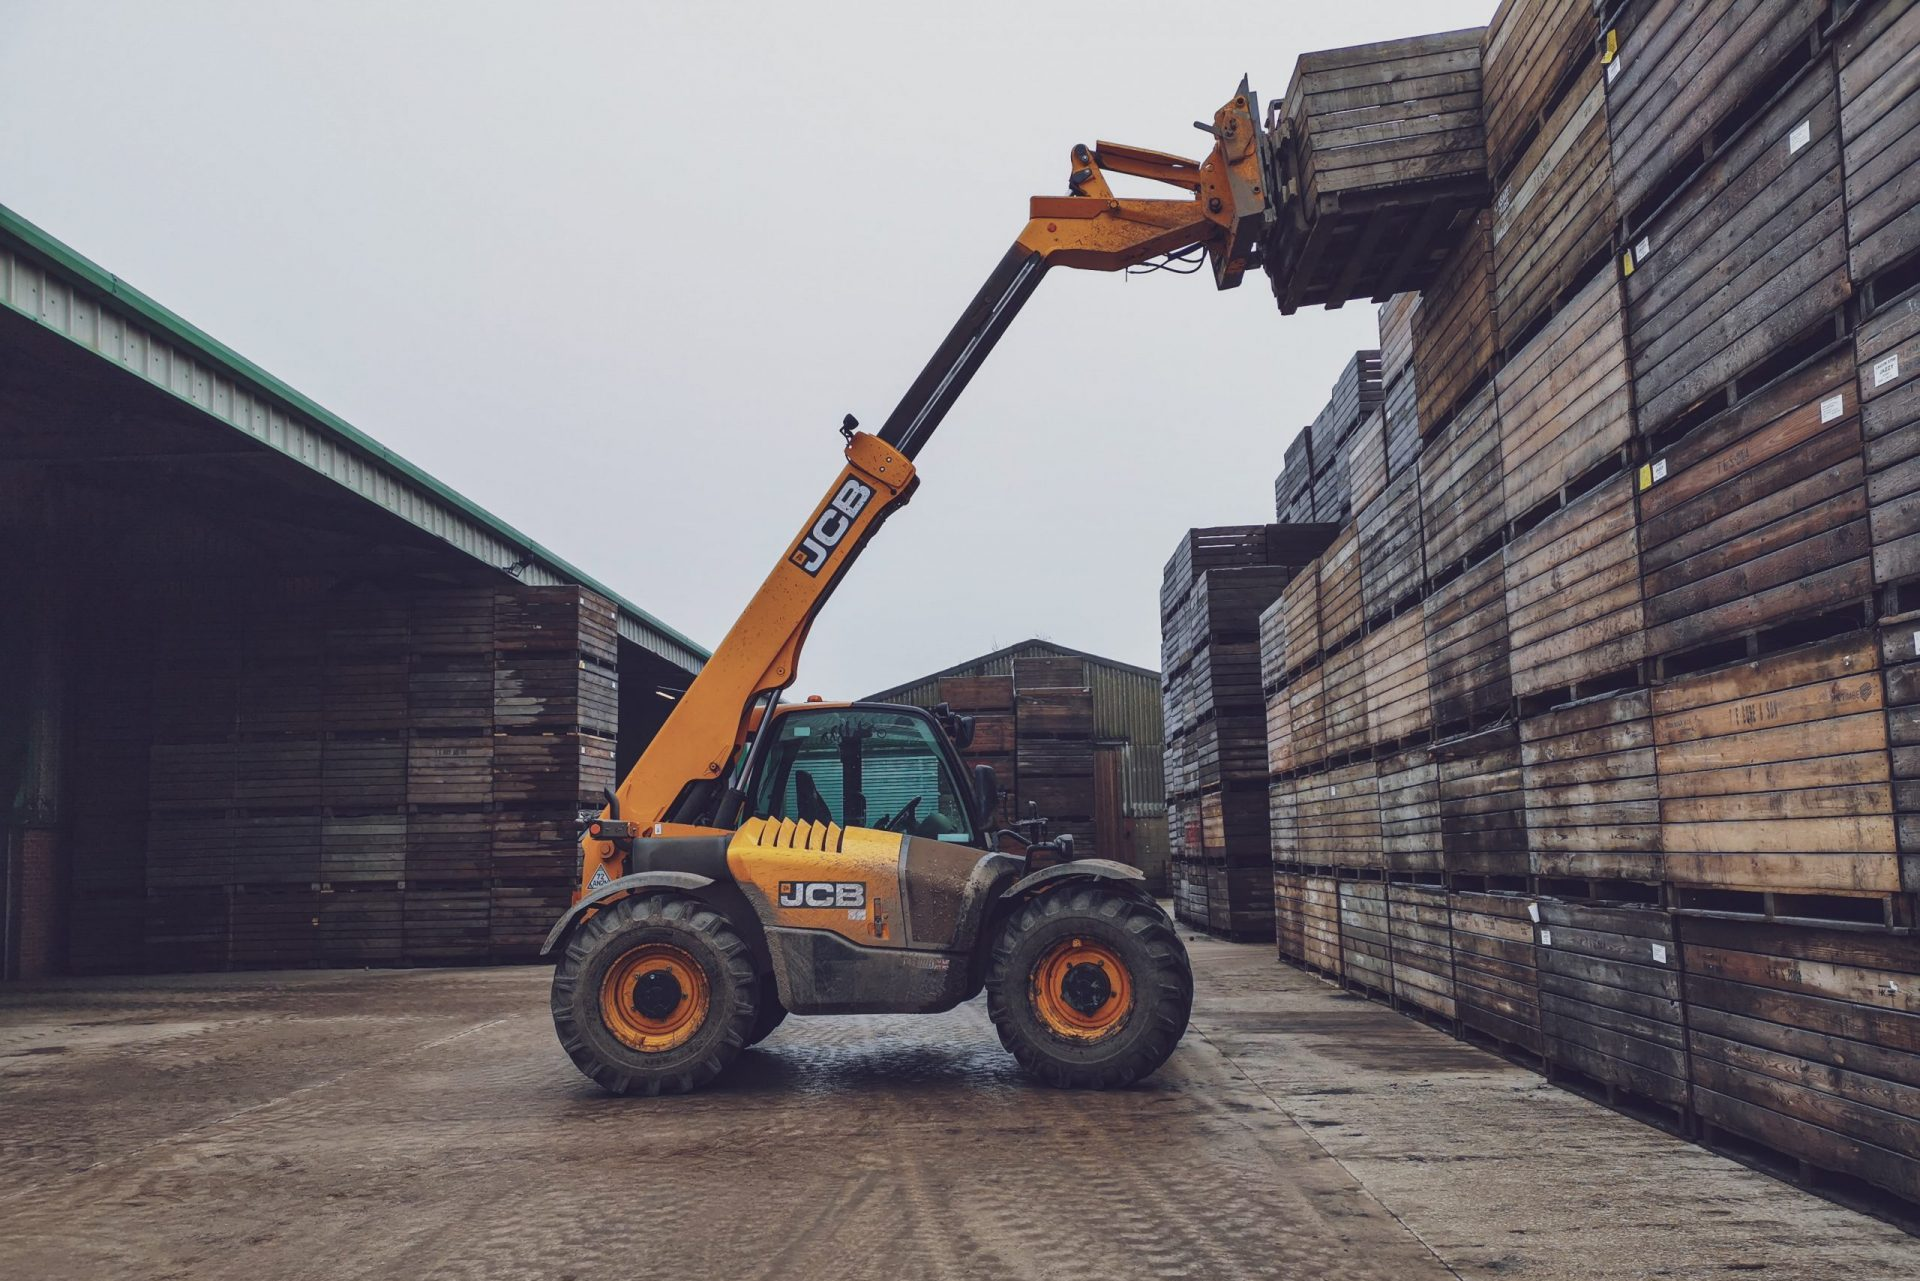 Why Social Media Marketing is Important for the Equipment Hire Industry